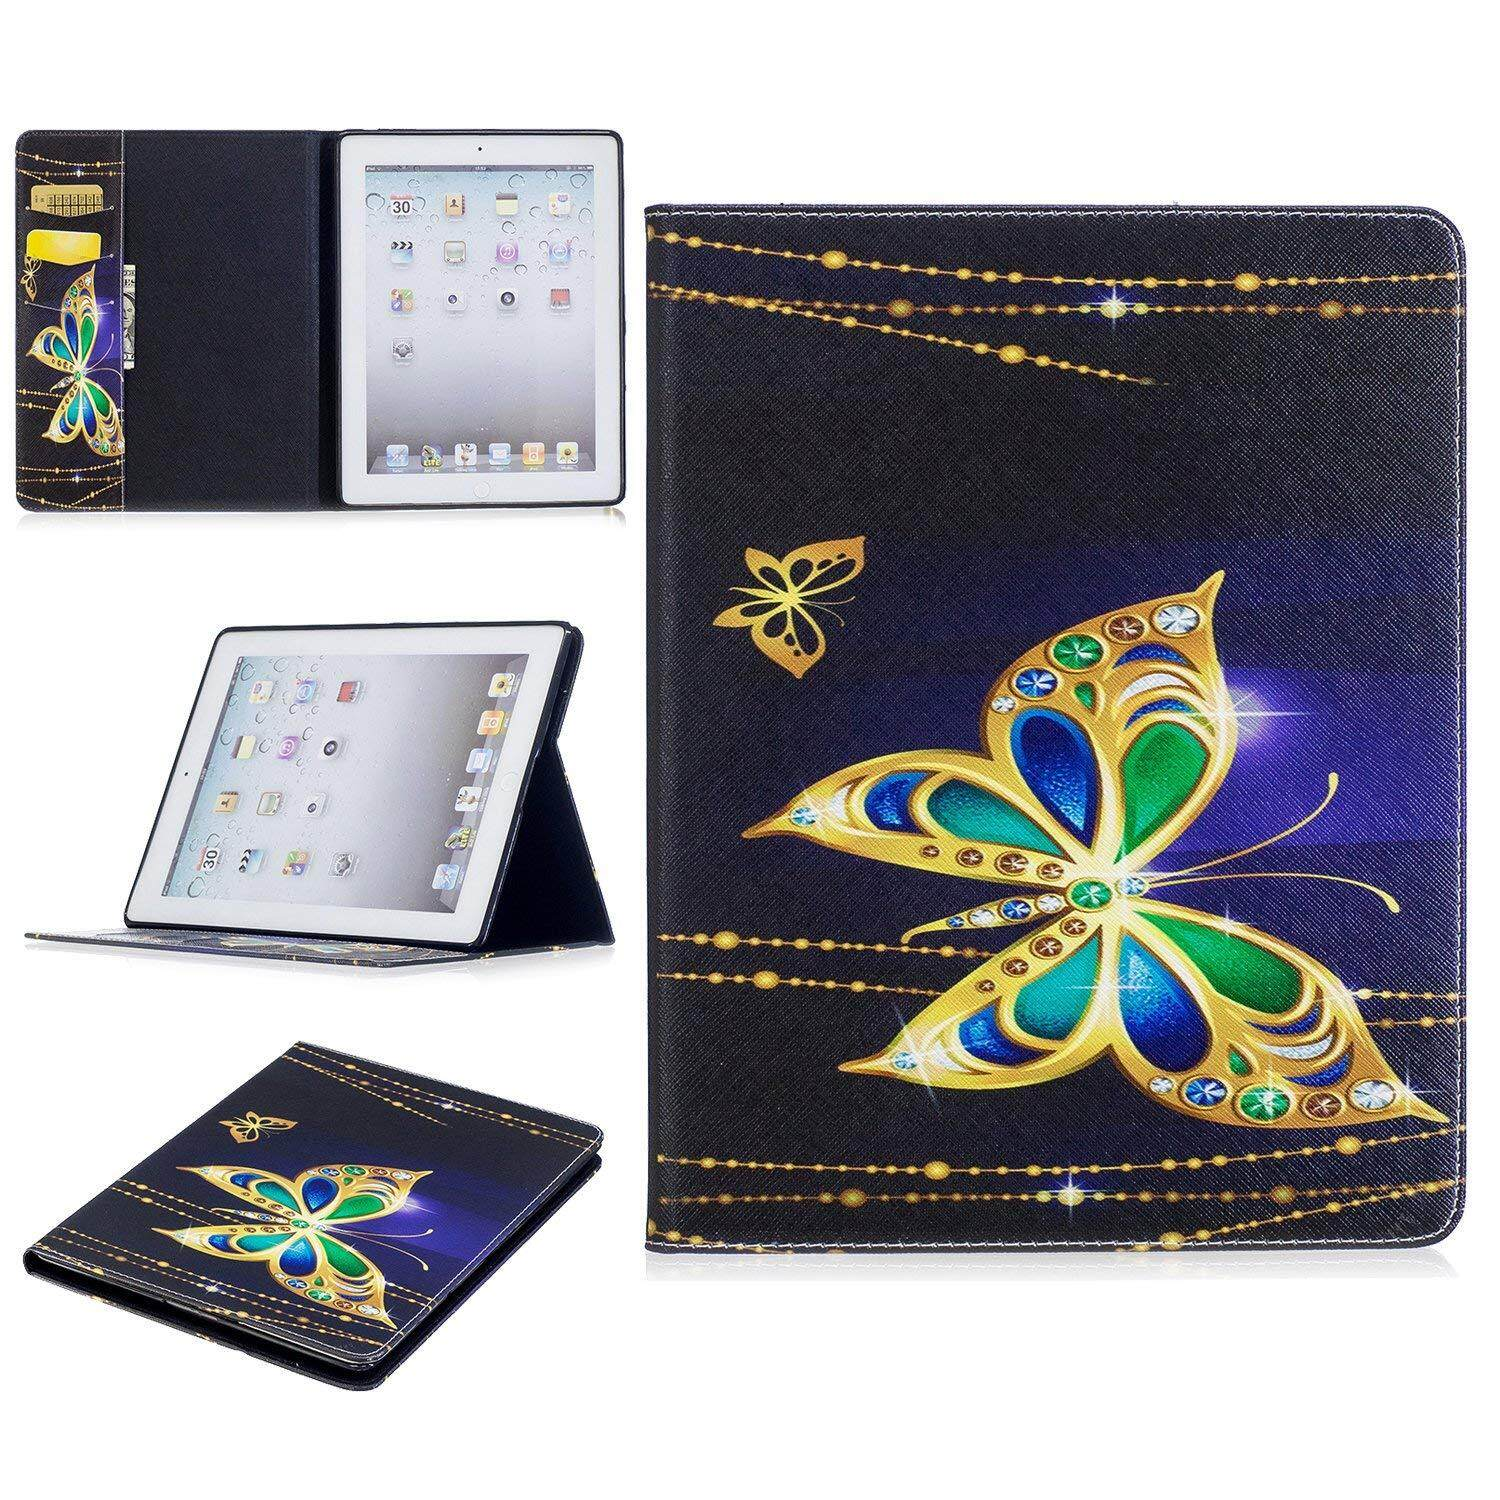 Discounts Up To 90 On Mobiles Tablets Only Lazada 2in1 Hybrid Armor Case Samsung Galaxy Tab A 70 2016 T285 Kingsons Flip Cover Leather Wallet Slim Folio With Stand Function Holder Slots Pandas Bamboo Personalised